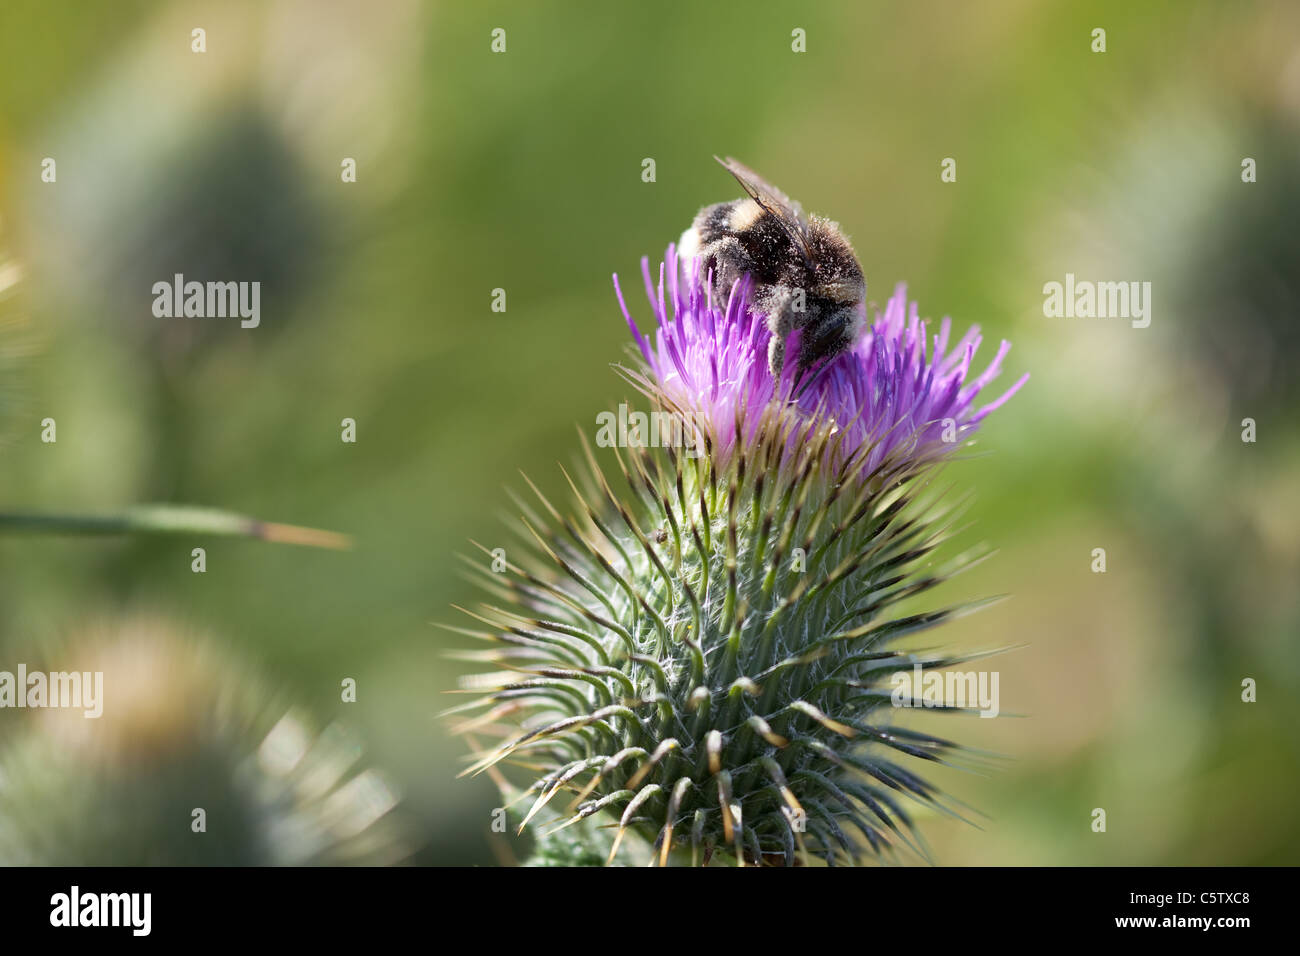 Bee covered in pollen gathering nectar from Scottish Thistle - Stock Image